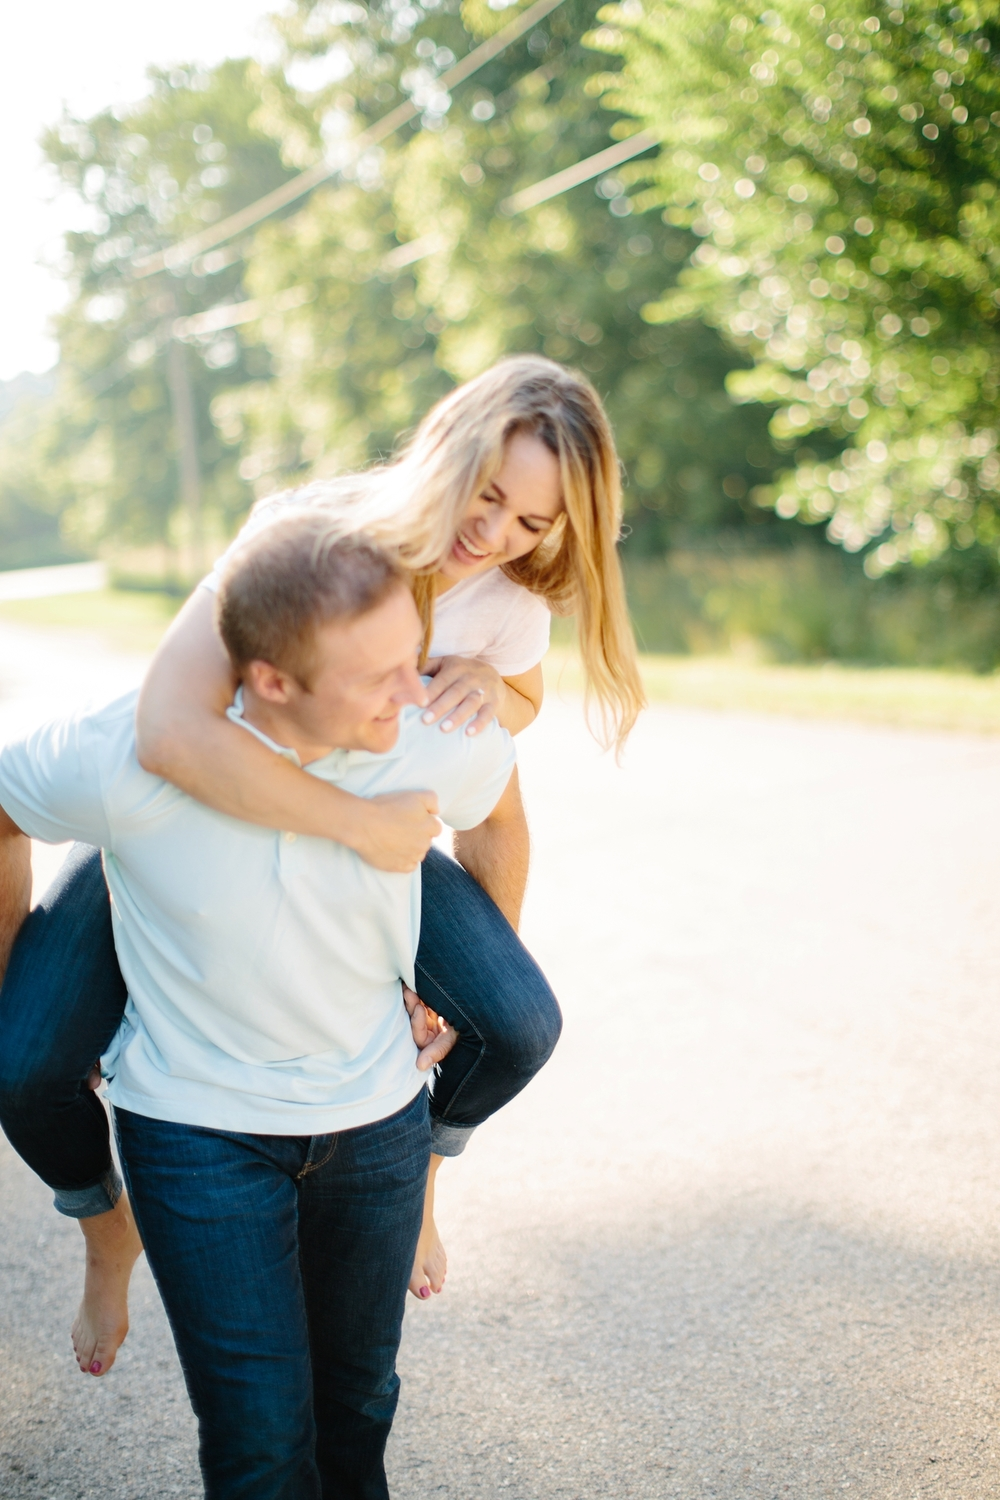 SunriseEngagementSession_0019.jpg